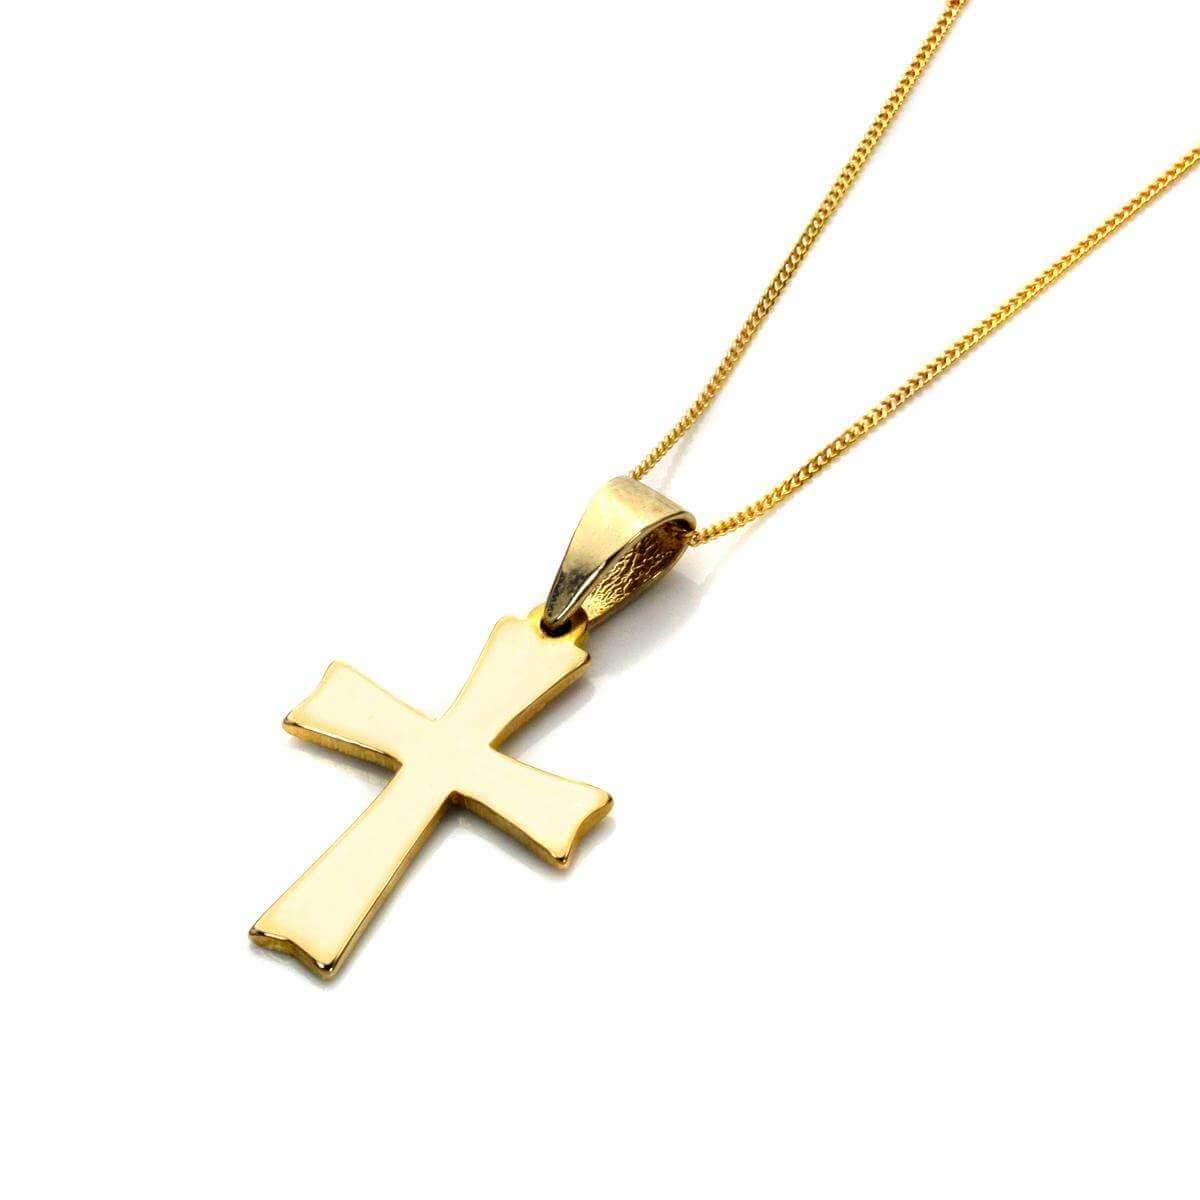 9ct Gold Cross Necklace - 16 - 18 Inches